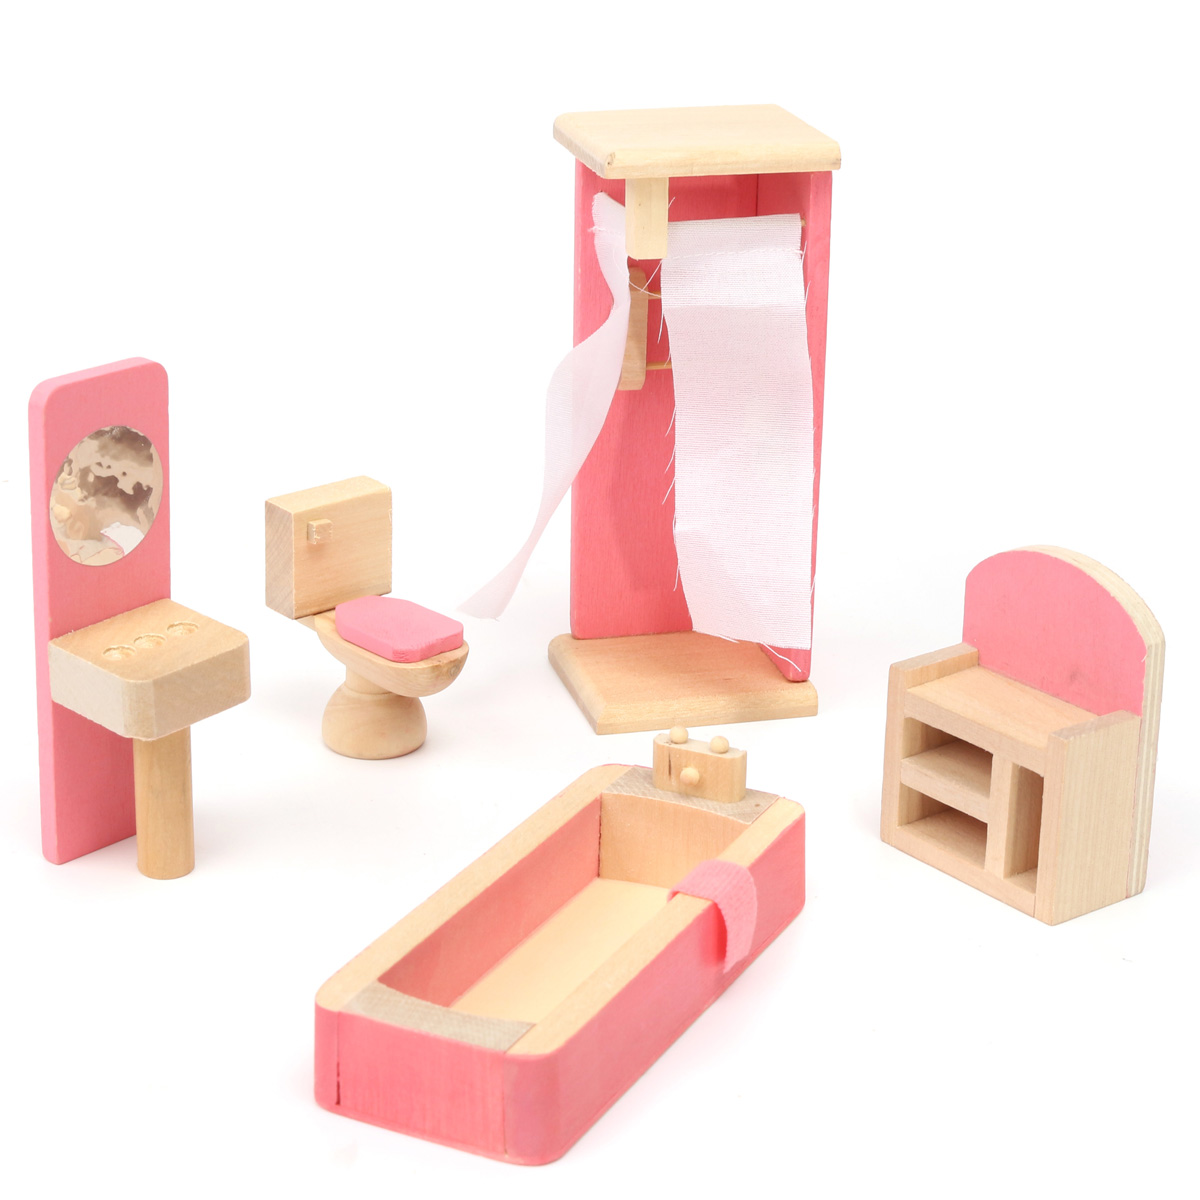 8e7250d9 Details about Wooden Furniture 6 Room Set Dolls House Family Miniature Kids  Children Play Toy